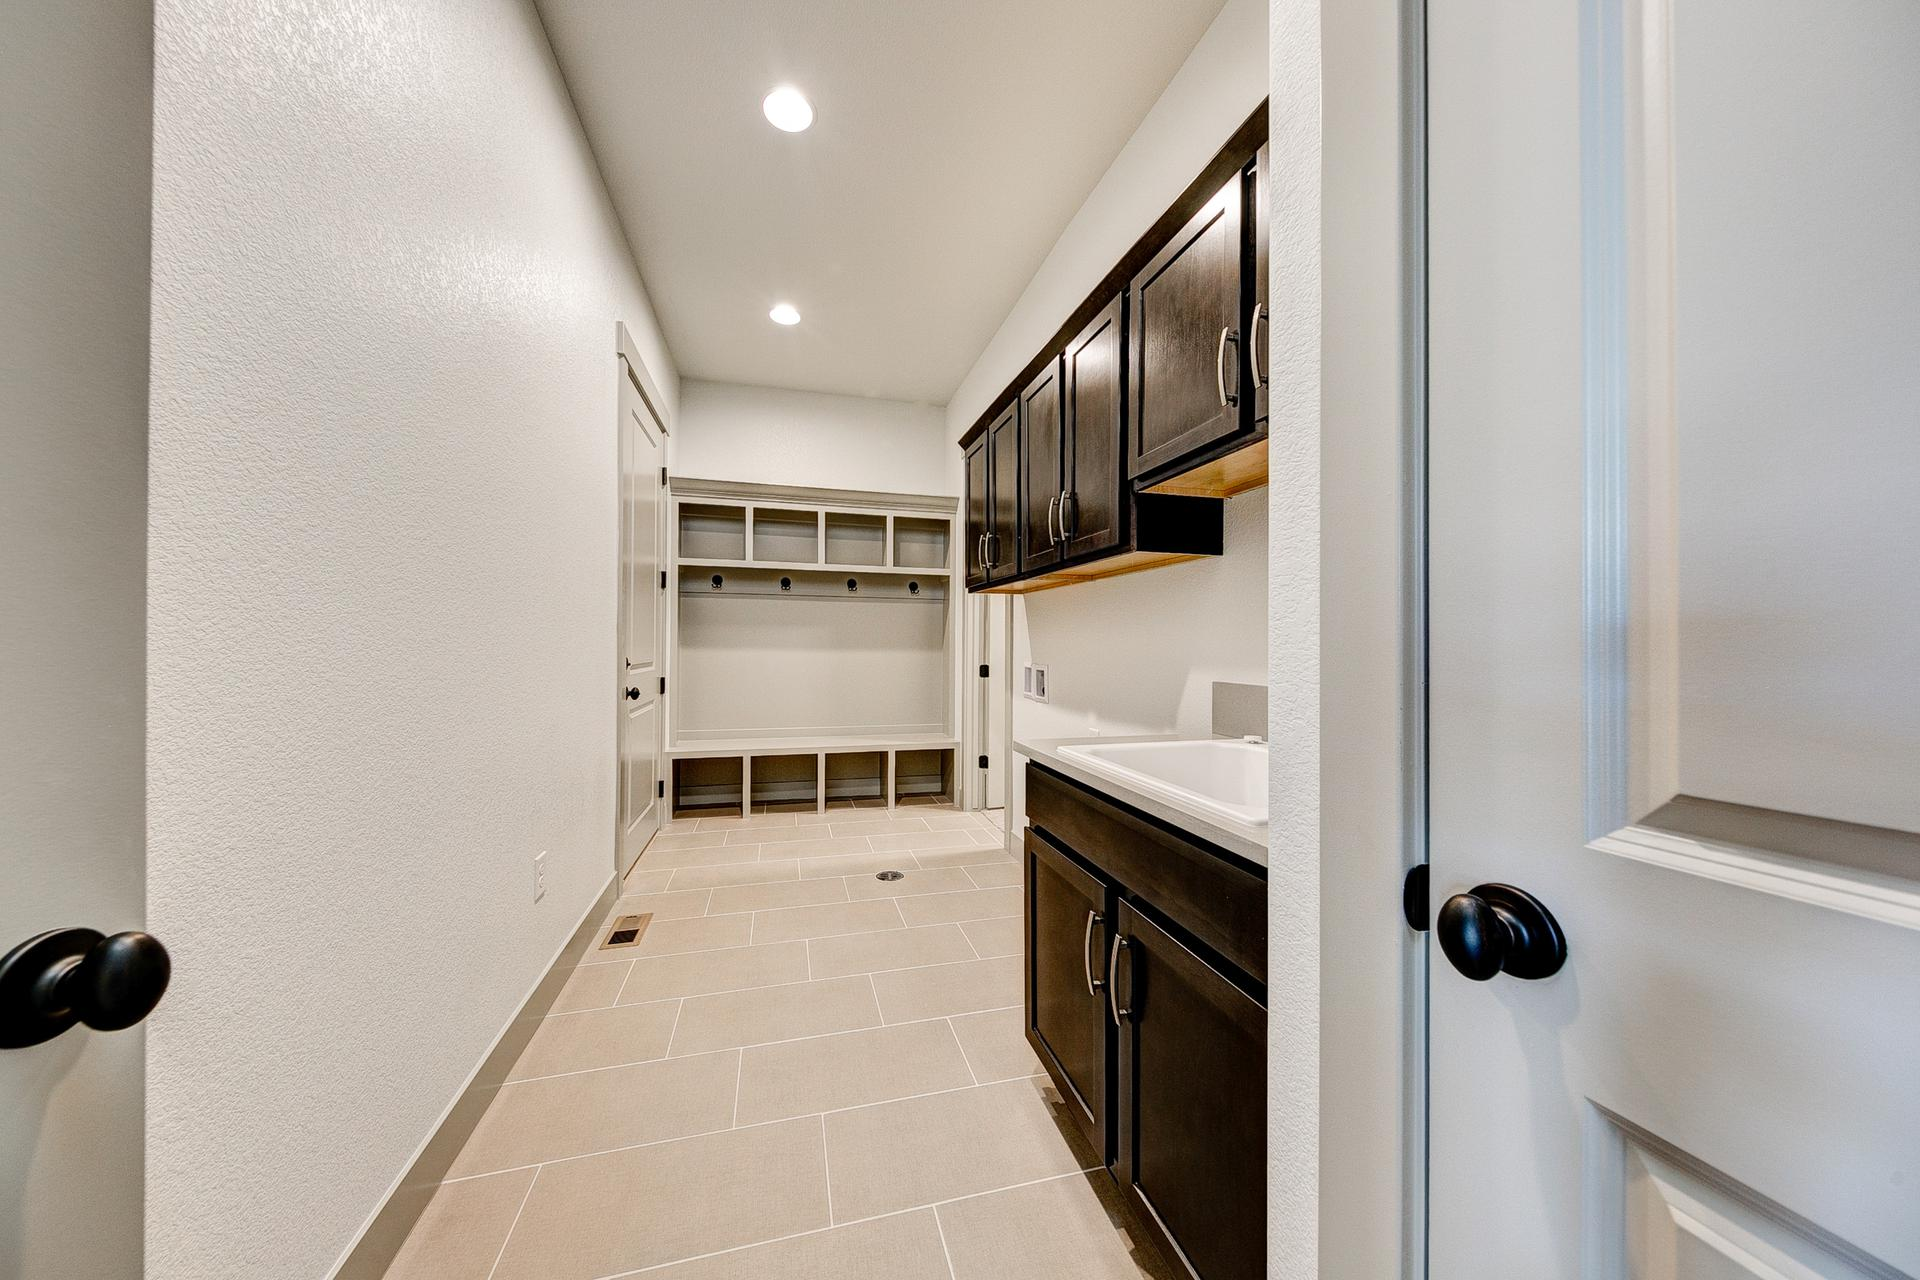 Laundry - Not Actual Home - Finishes Will Vary